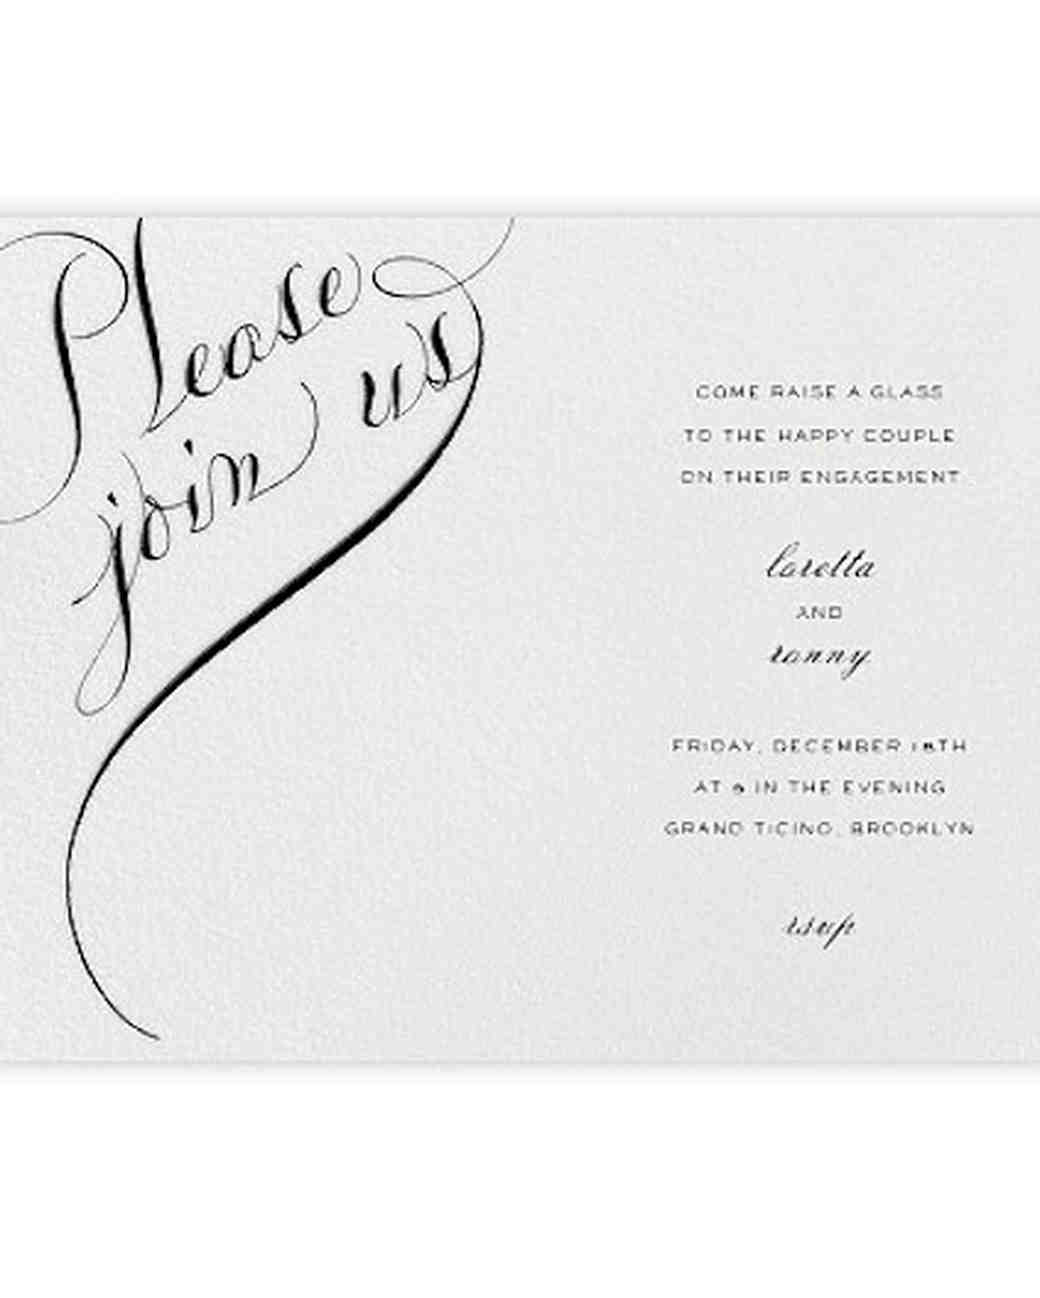 paperless-engagement-party-invitations-paperless-post-traditional-script-0416.jpg